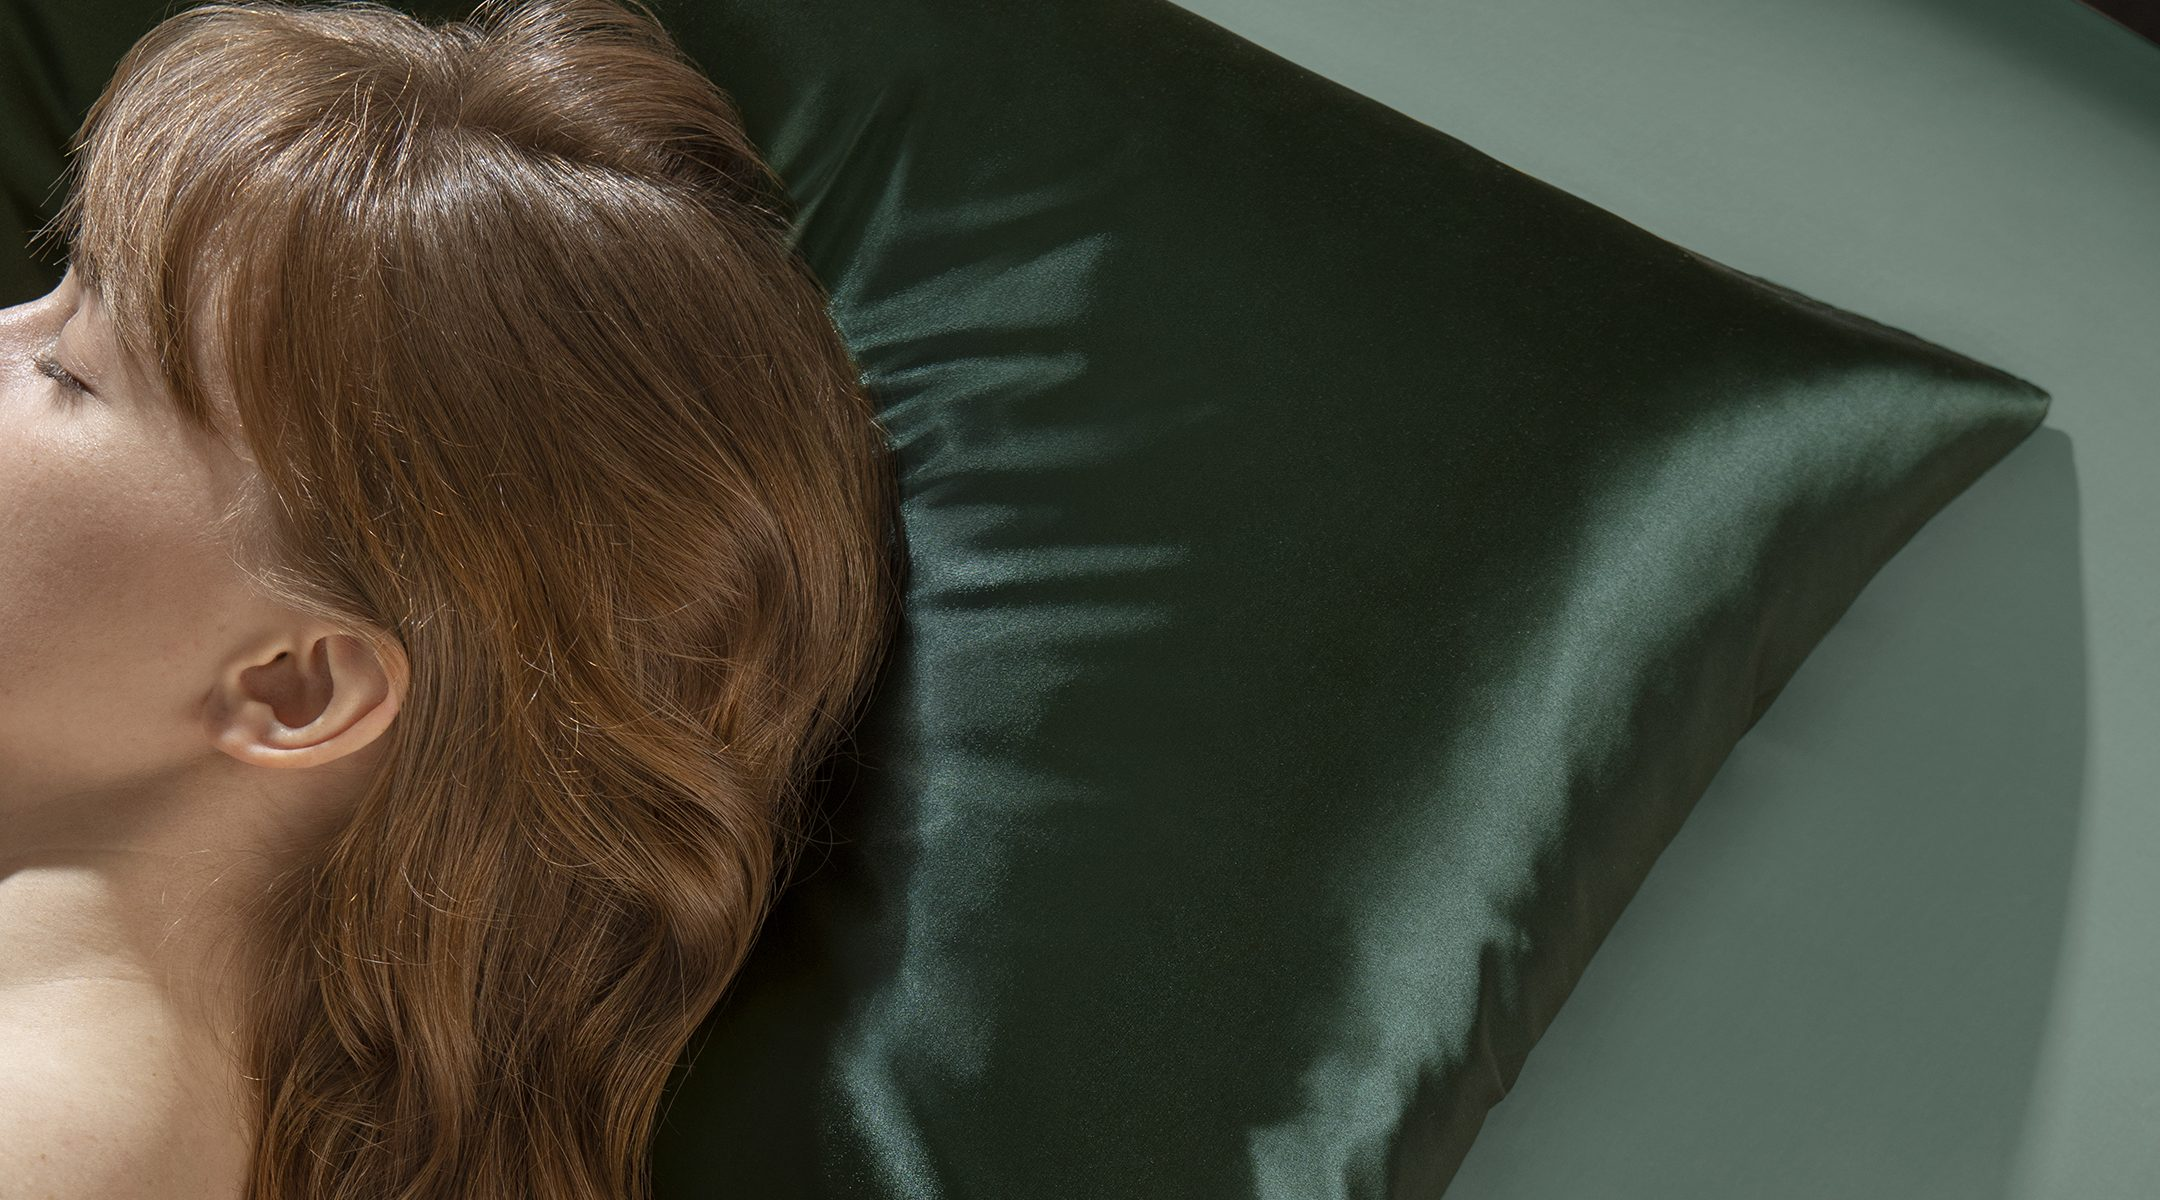 woman with wavy brown hair and bangs sleeping on a dark green silk pillowcase